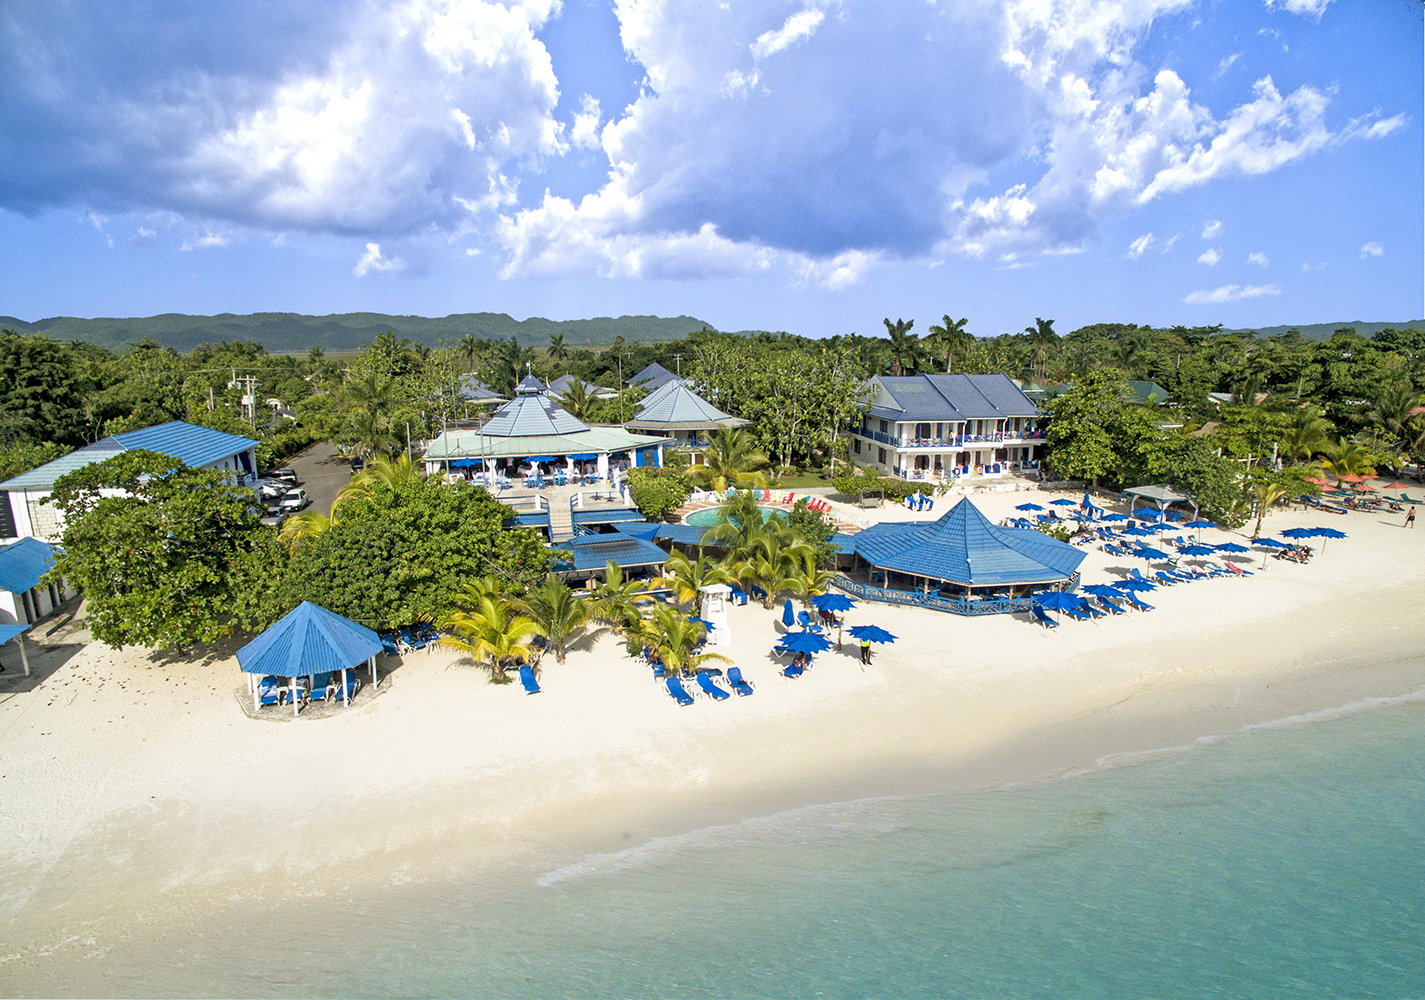 Treehouse Negril Aerial View